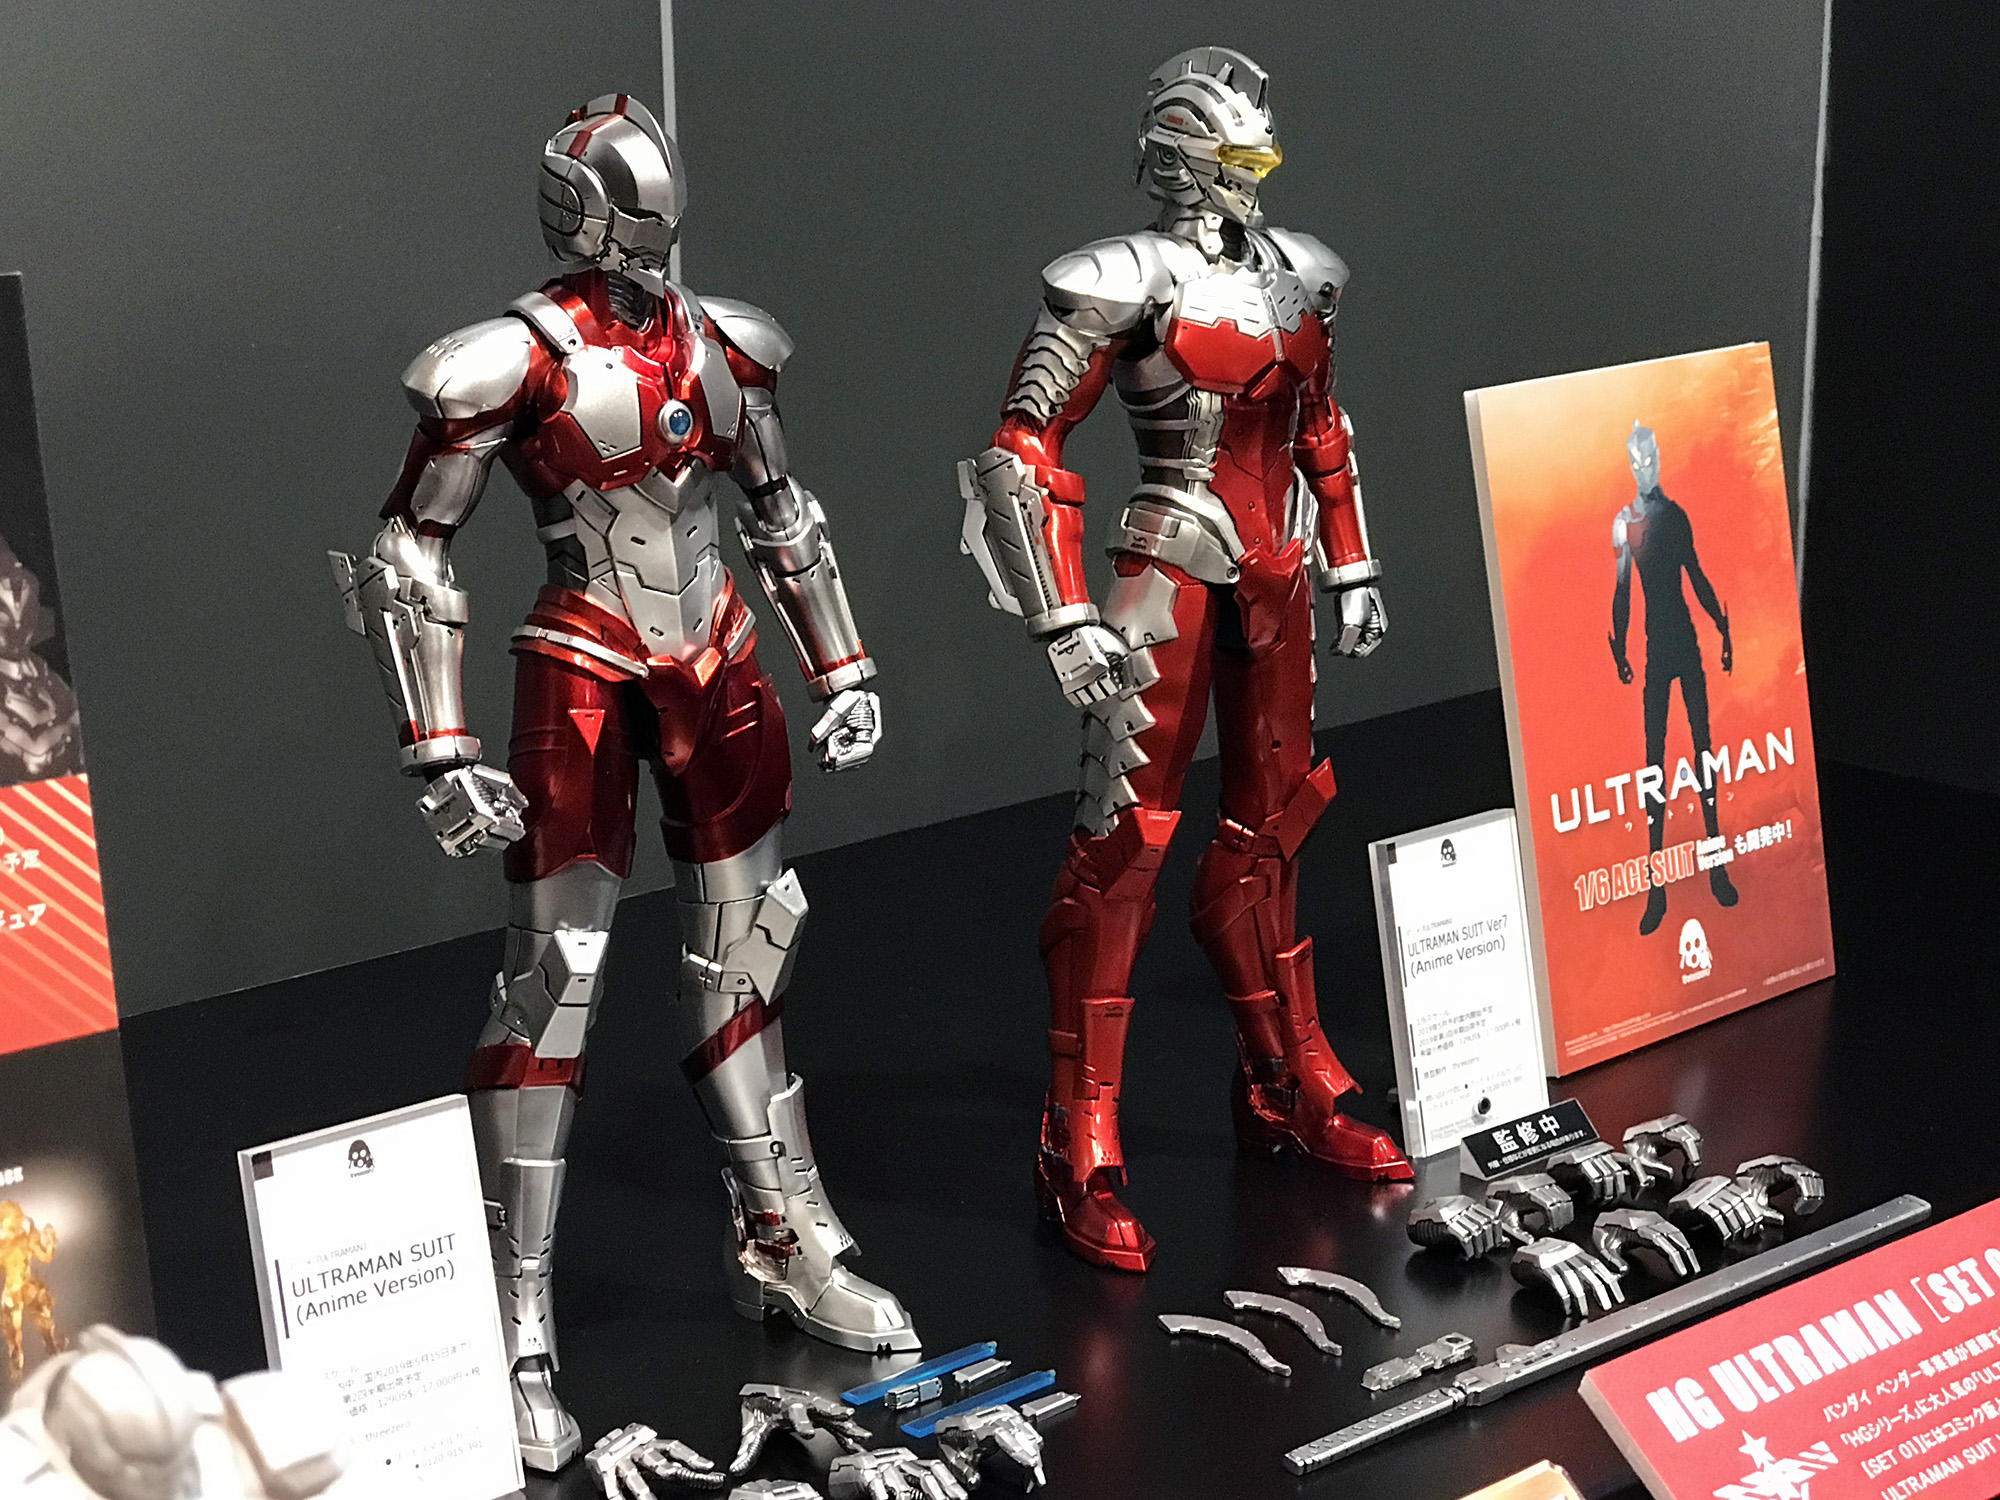 ultramanexhibit_05.jpg